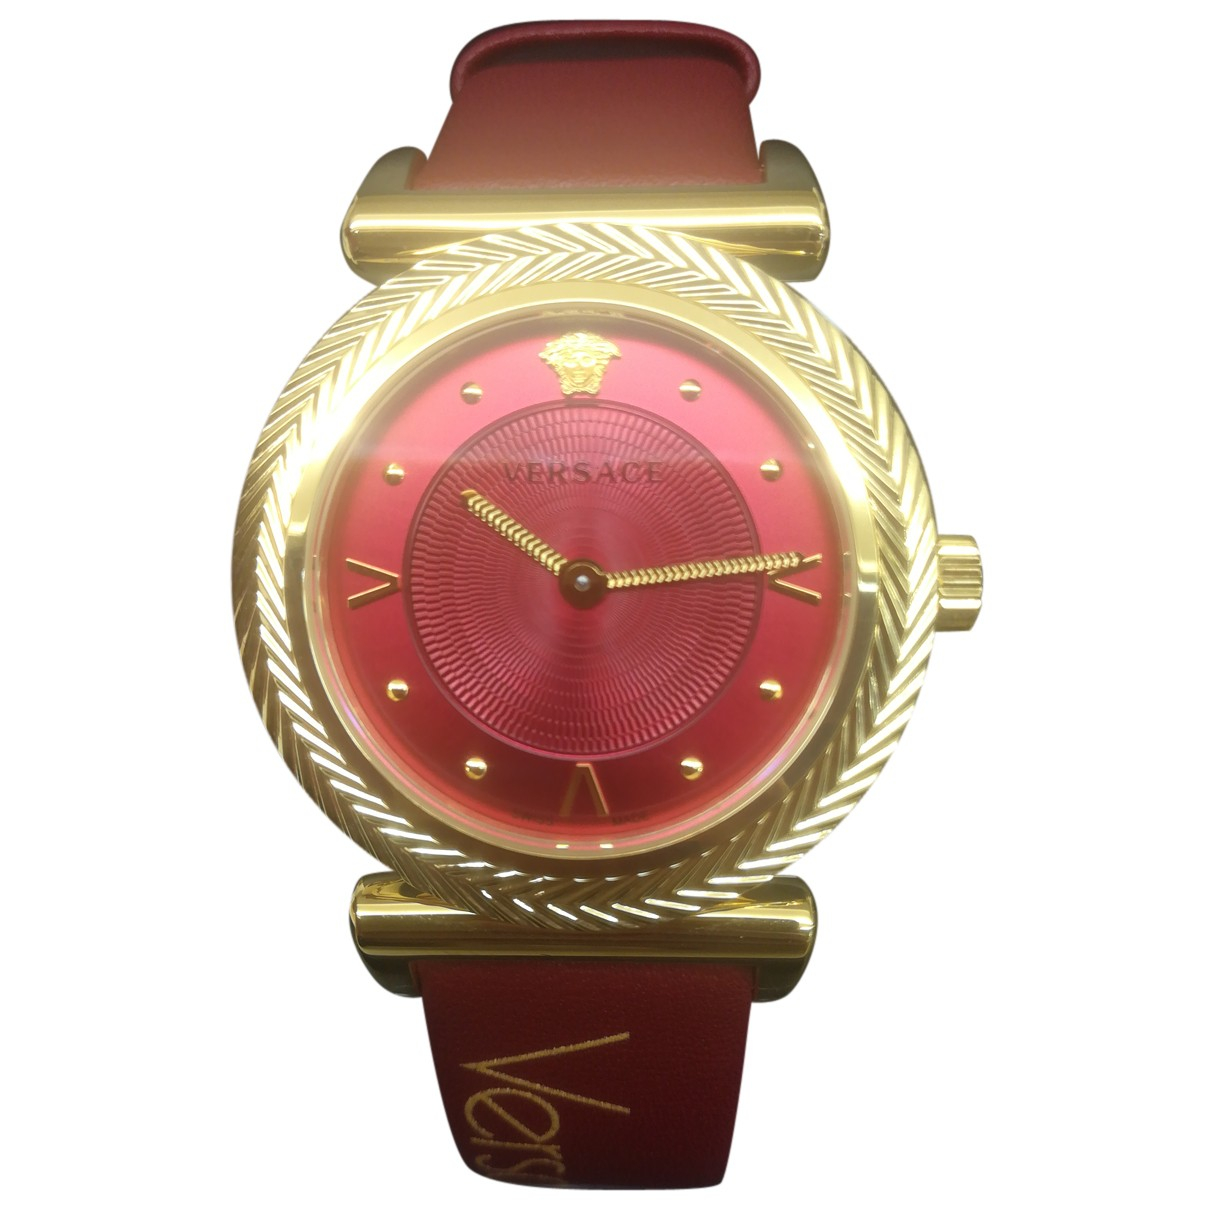 Versace N Burgundy Gold plated watch for Women N